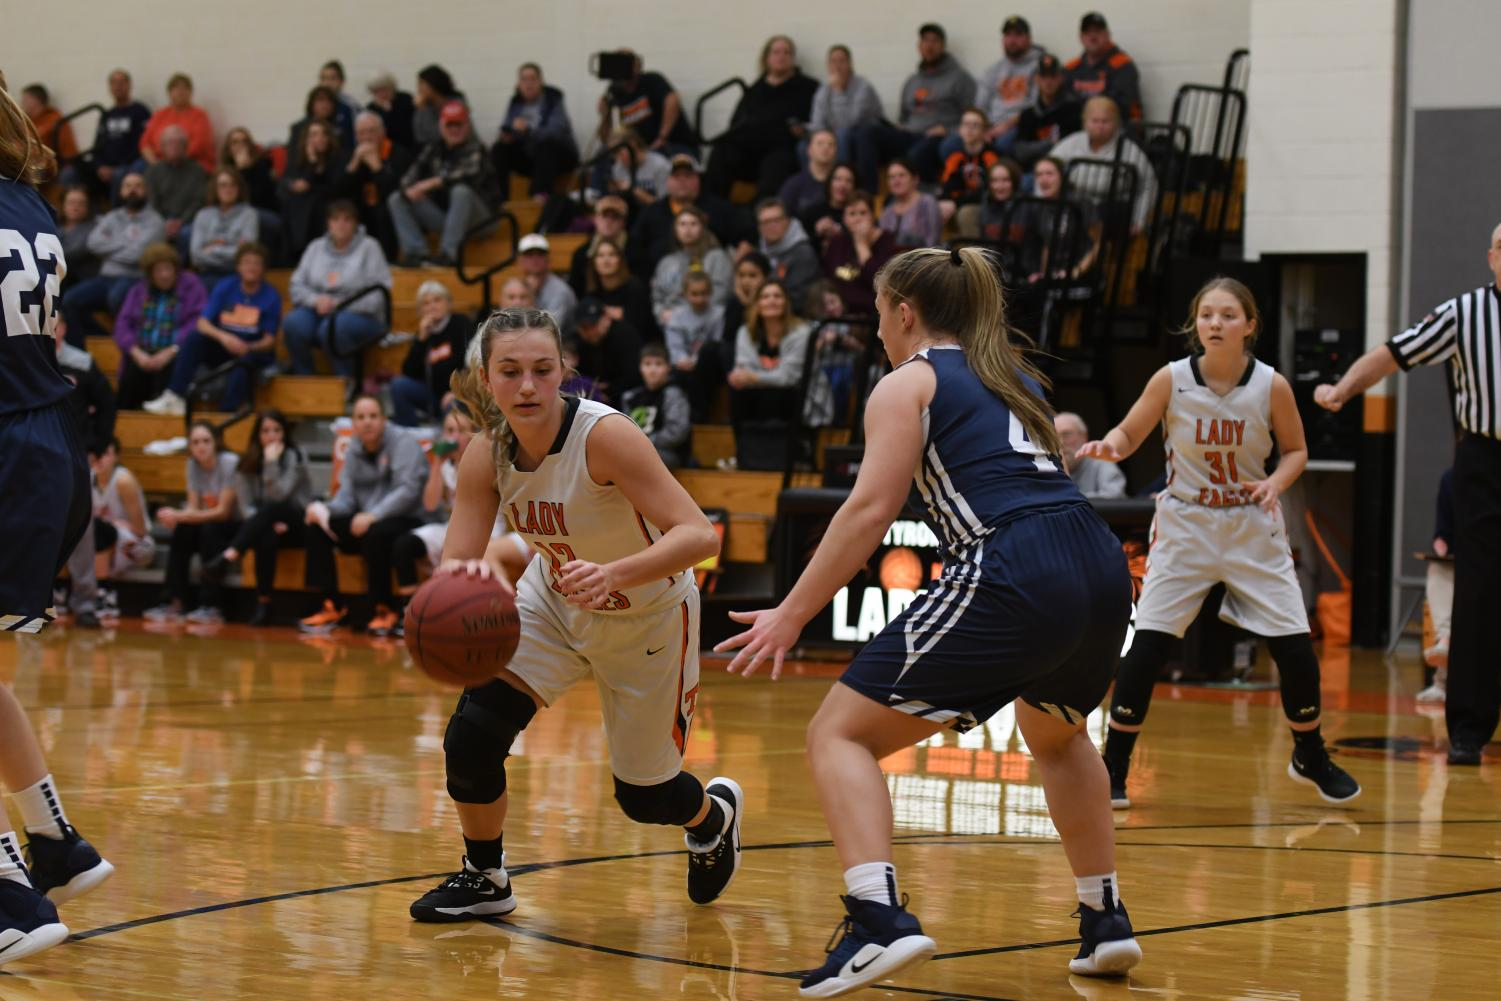 Emma Getz driving to the hoop.